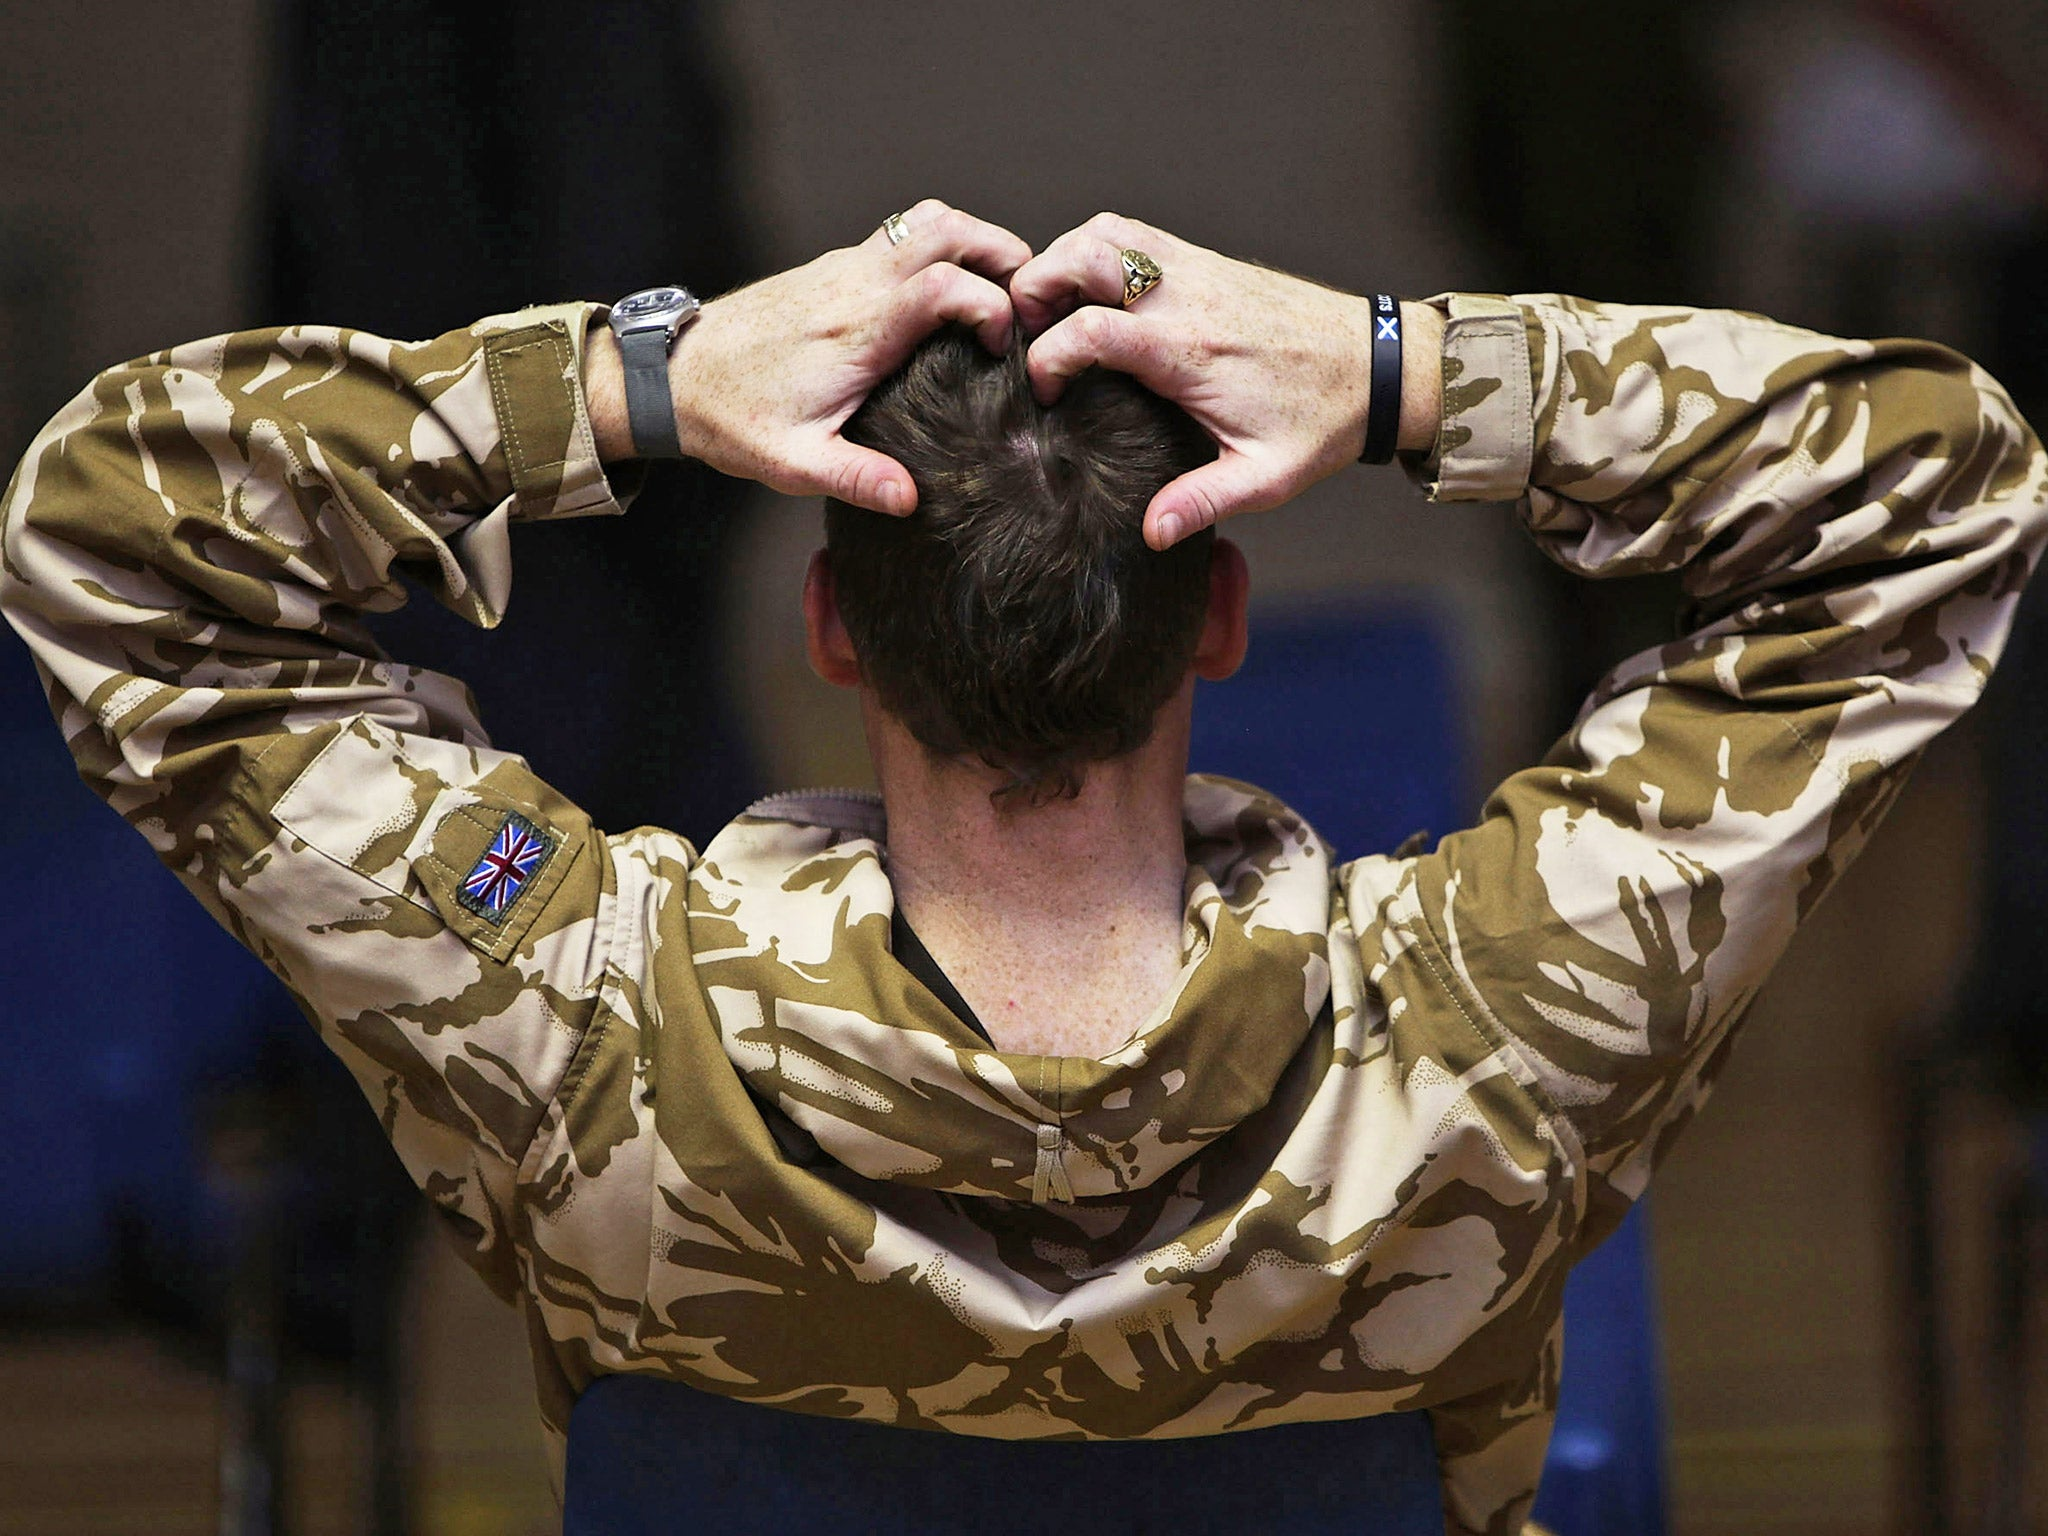 MoD condemned by medical experts for giving soldiers Lariam The Independent